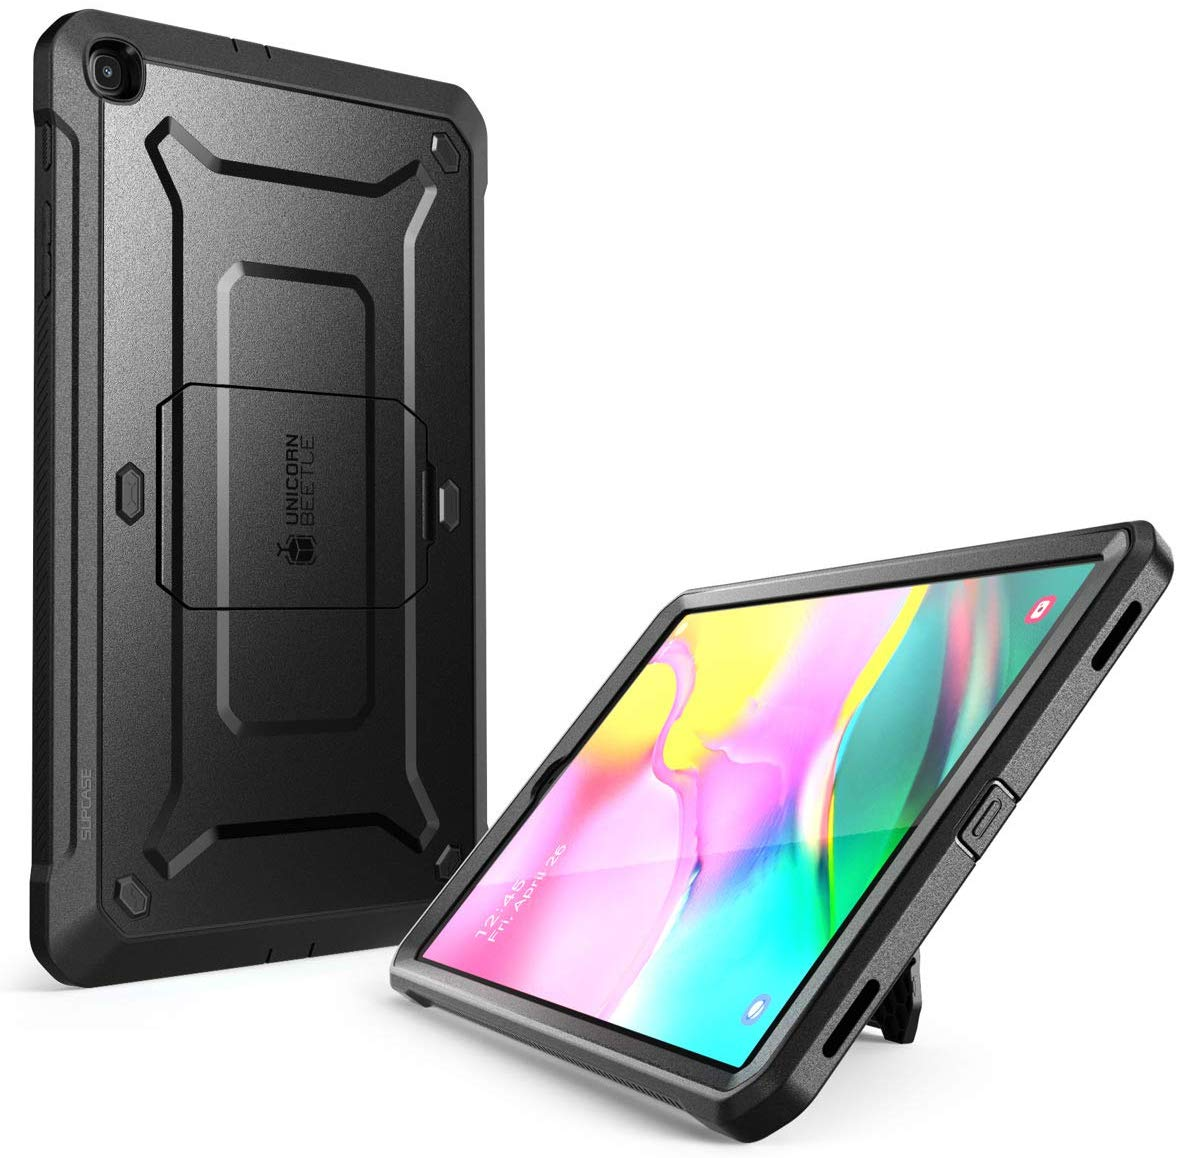 Etui pancerne Supcase Unicorn Beetle Pro do Galaxy Tab A 10.1 2019